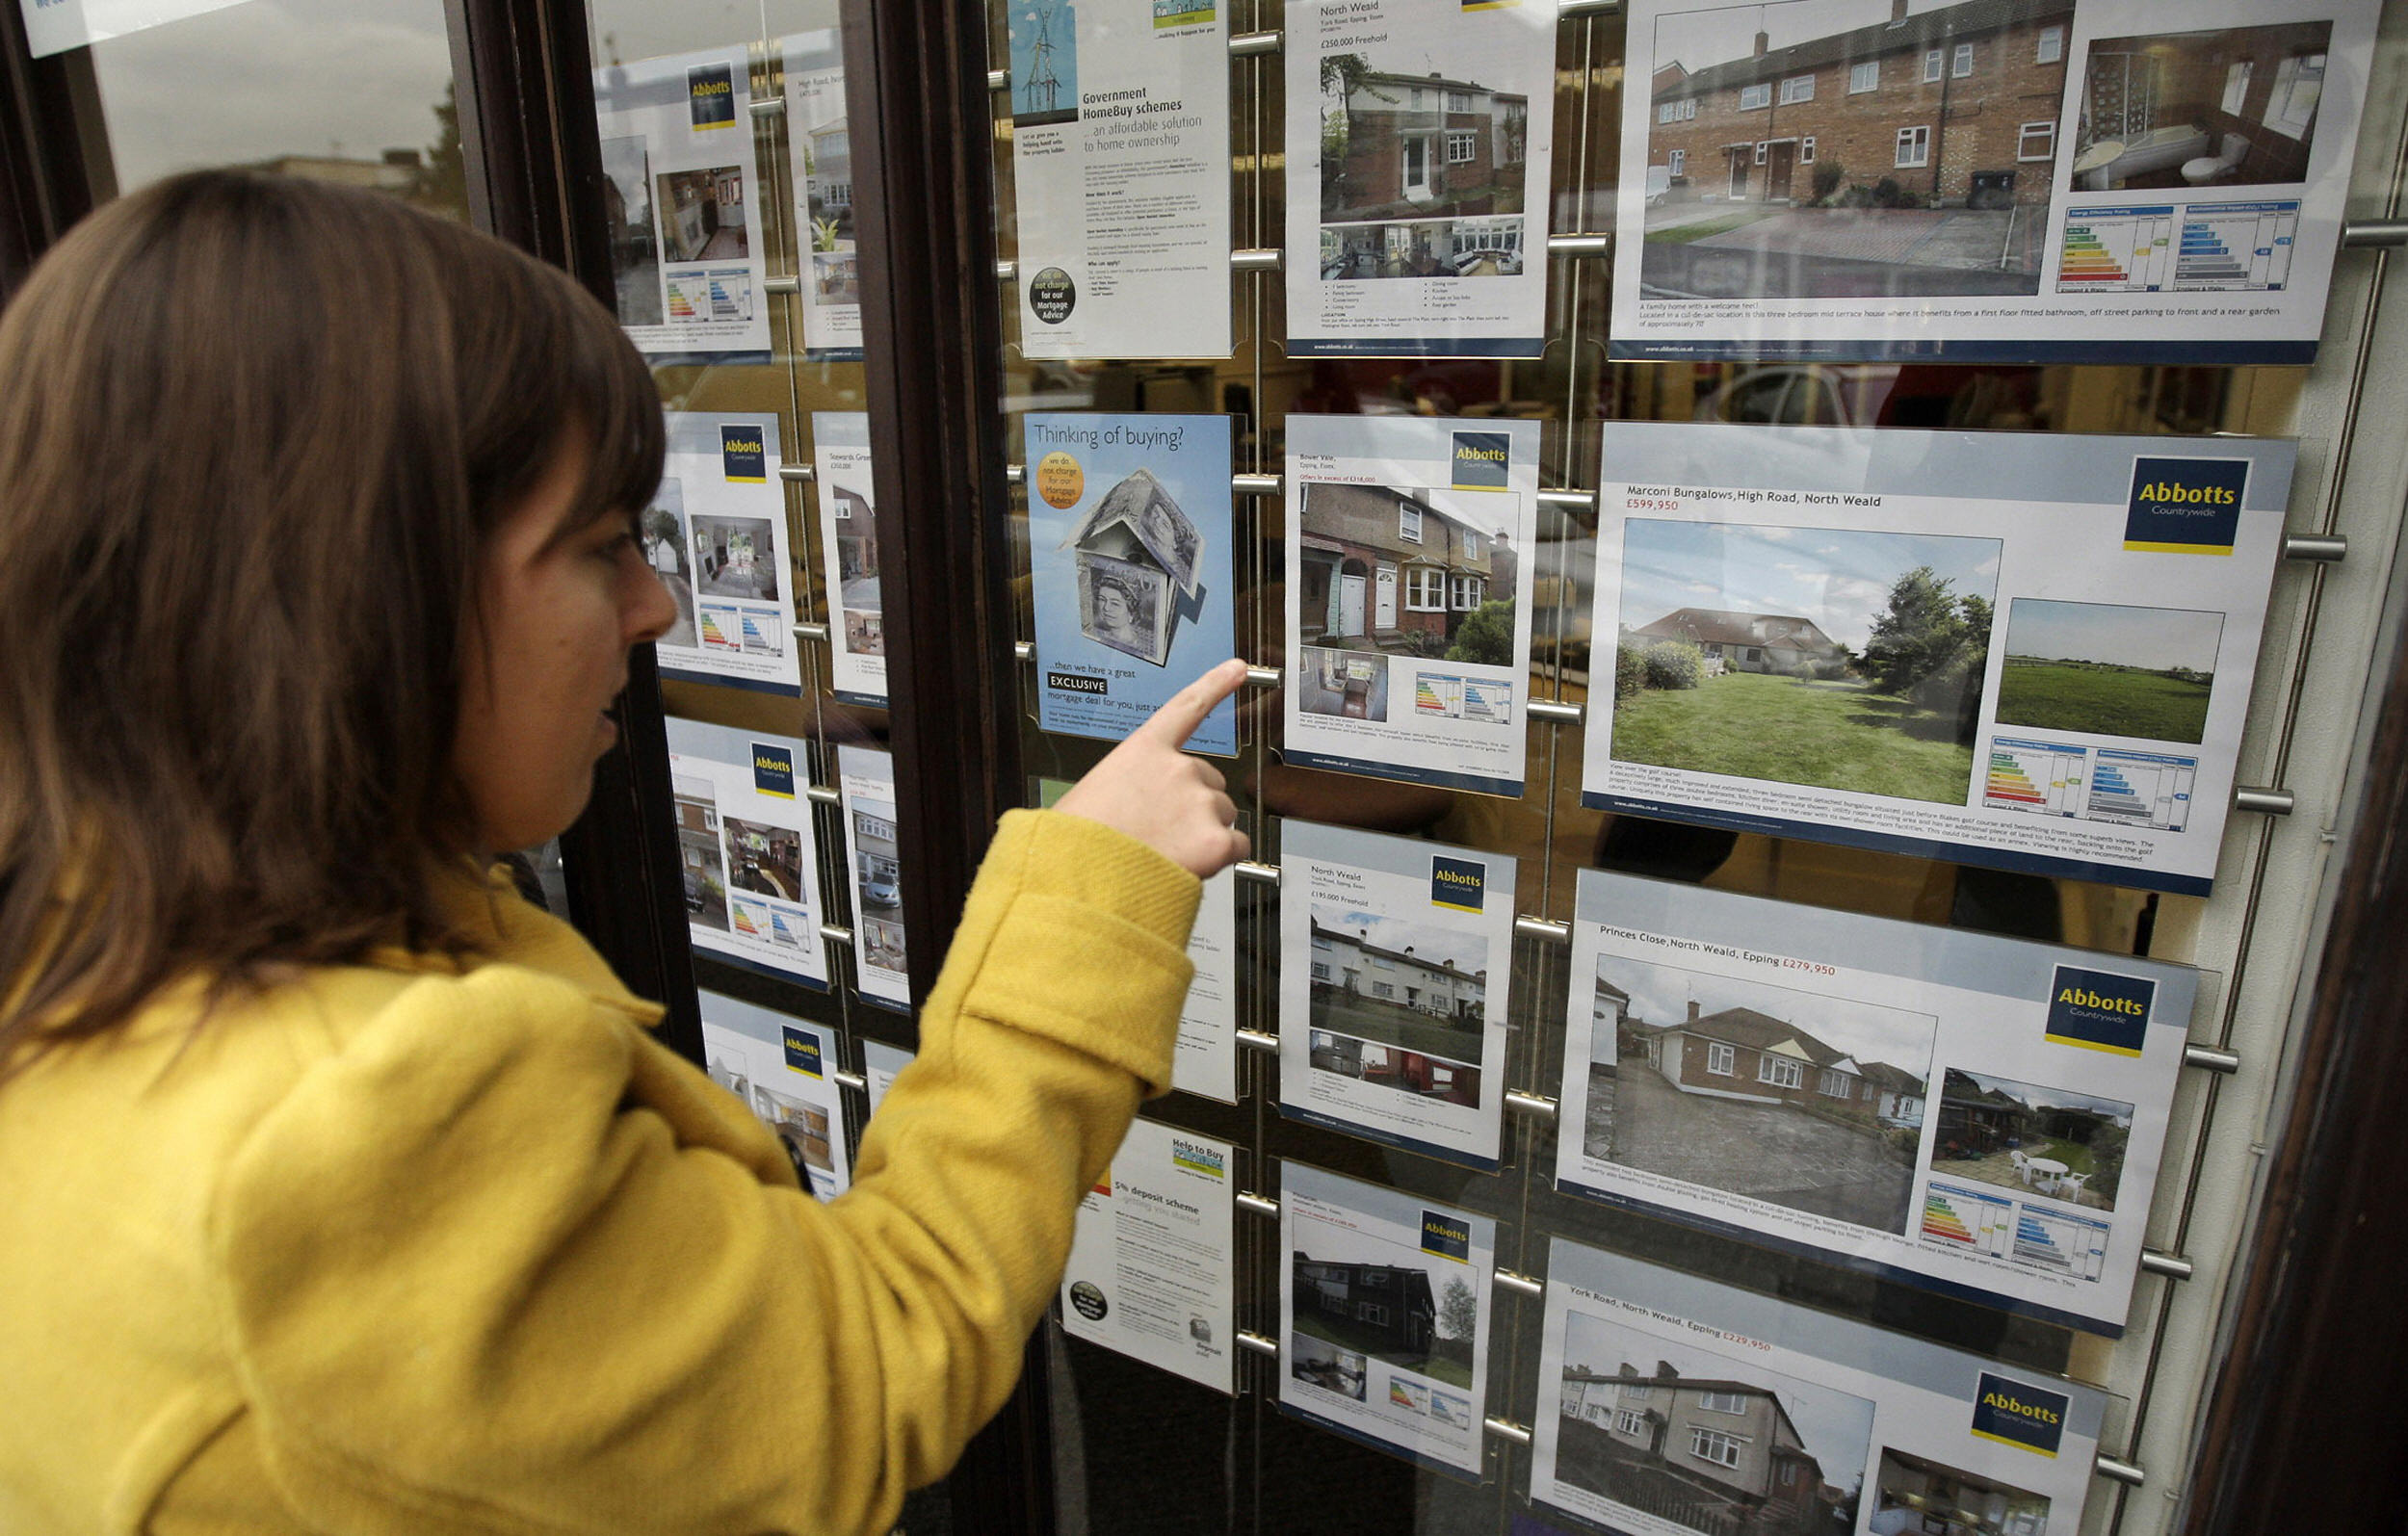 London property prices rise 12.3% and Essex is booming